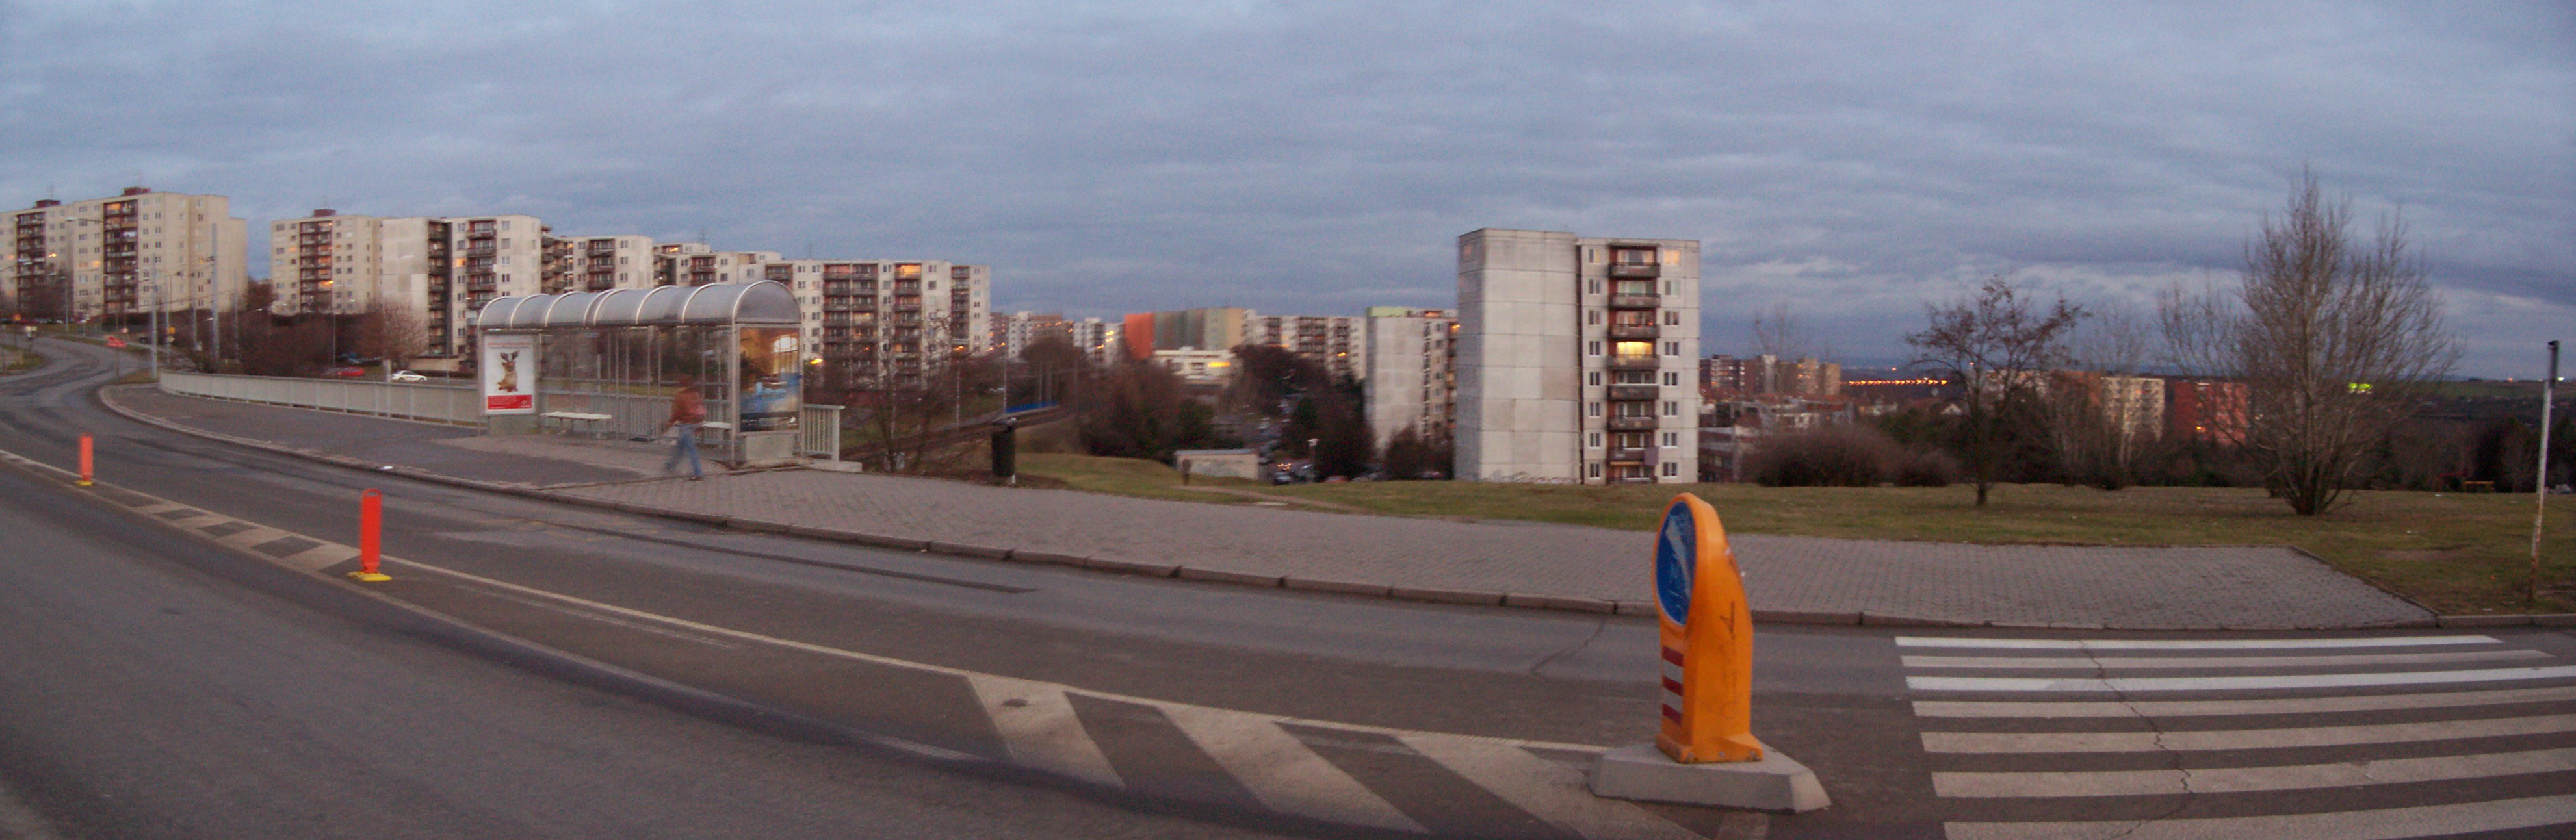 Panorama of Brno-Bohunice district.jpg